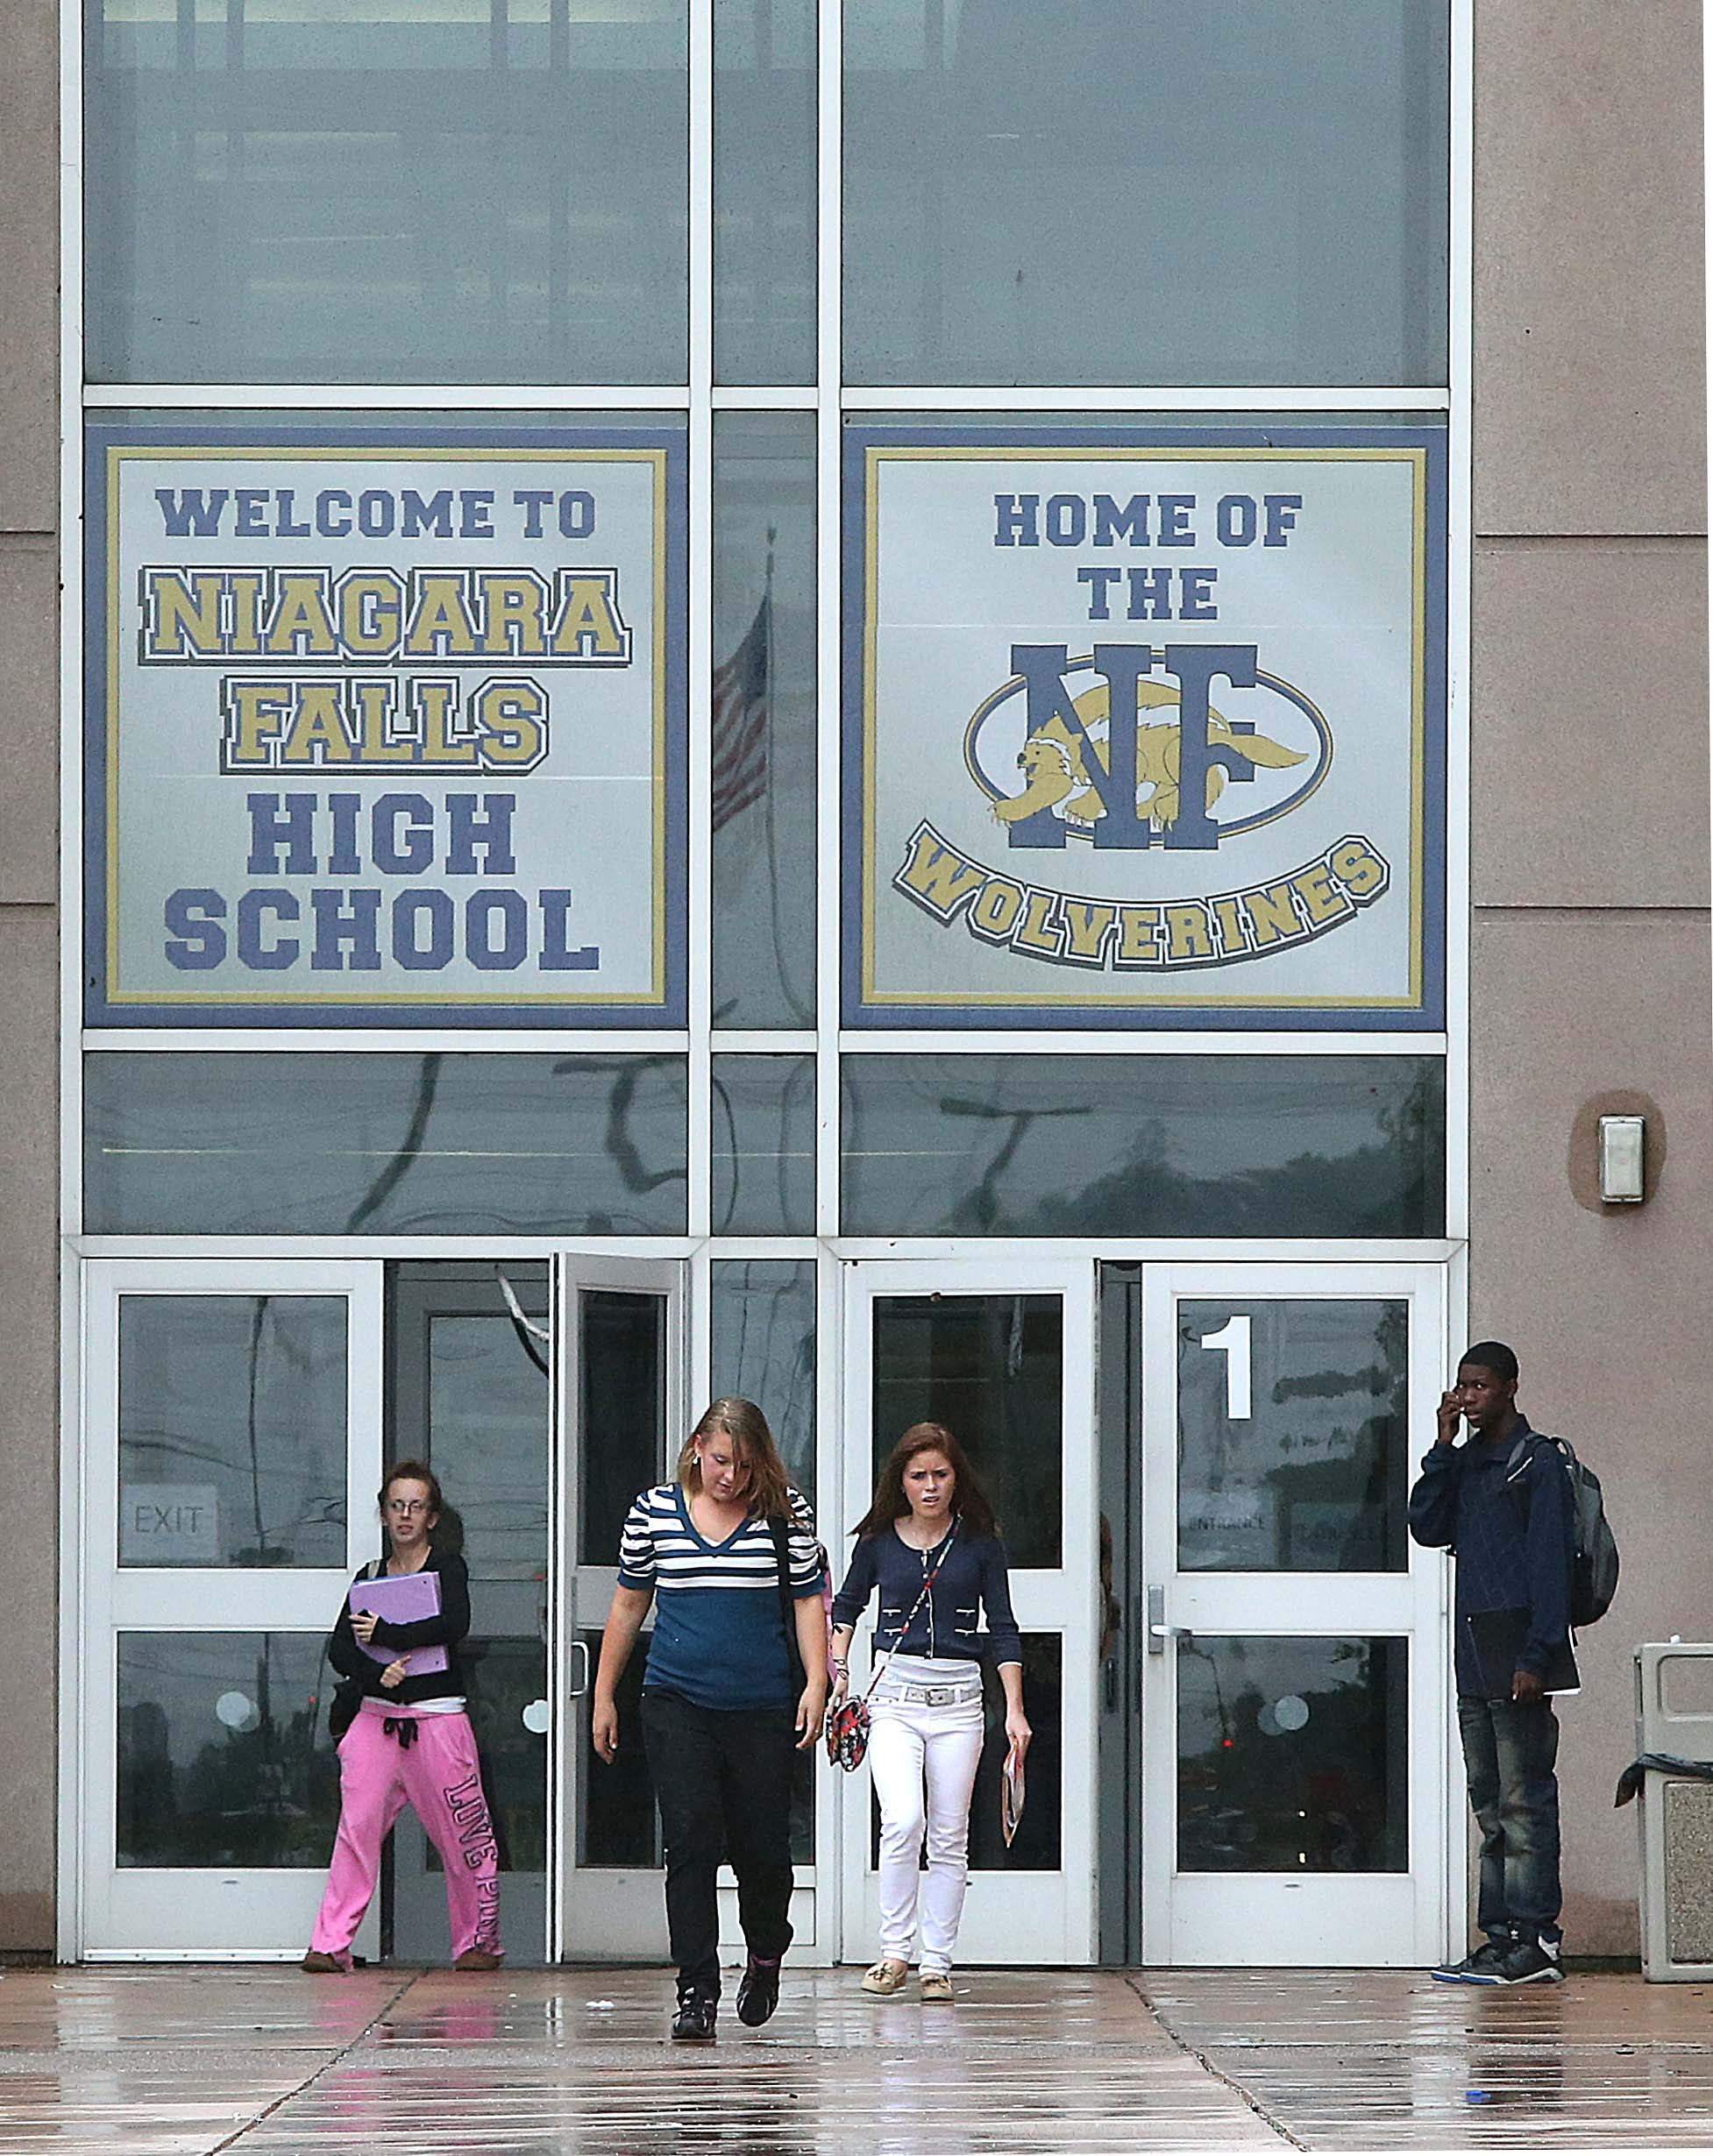 Robert Kirkham/Buffalo News    Planned improvements for Niagara Falls High School include a visitor entry system, wireless networking and emergency exit lighting.